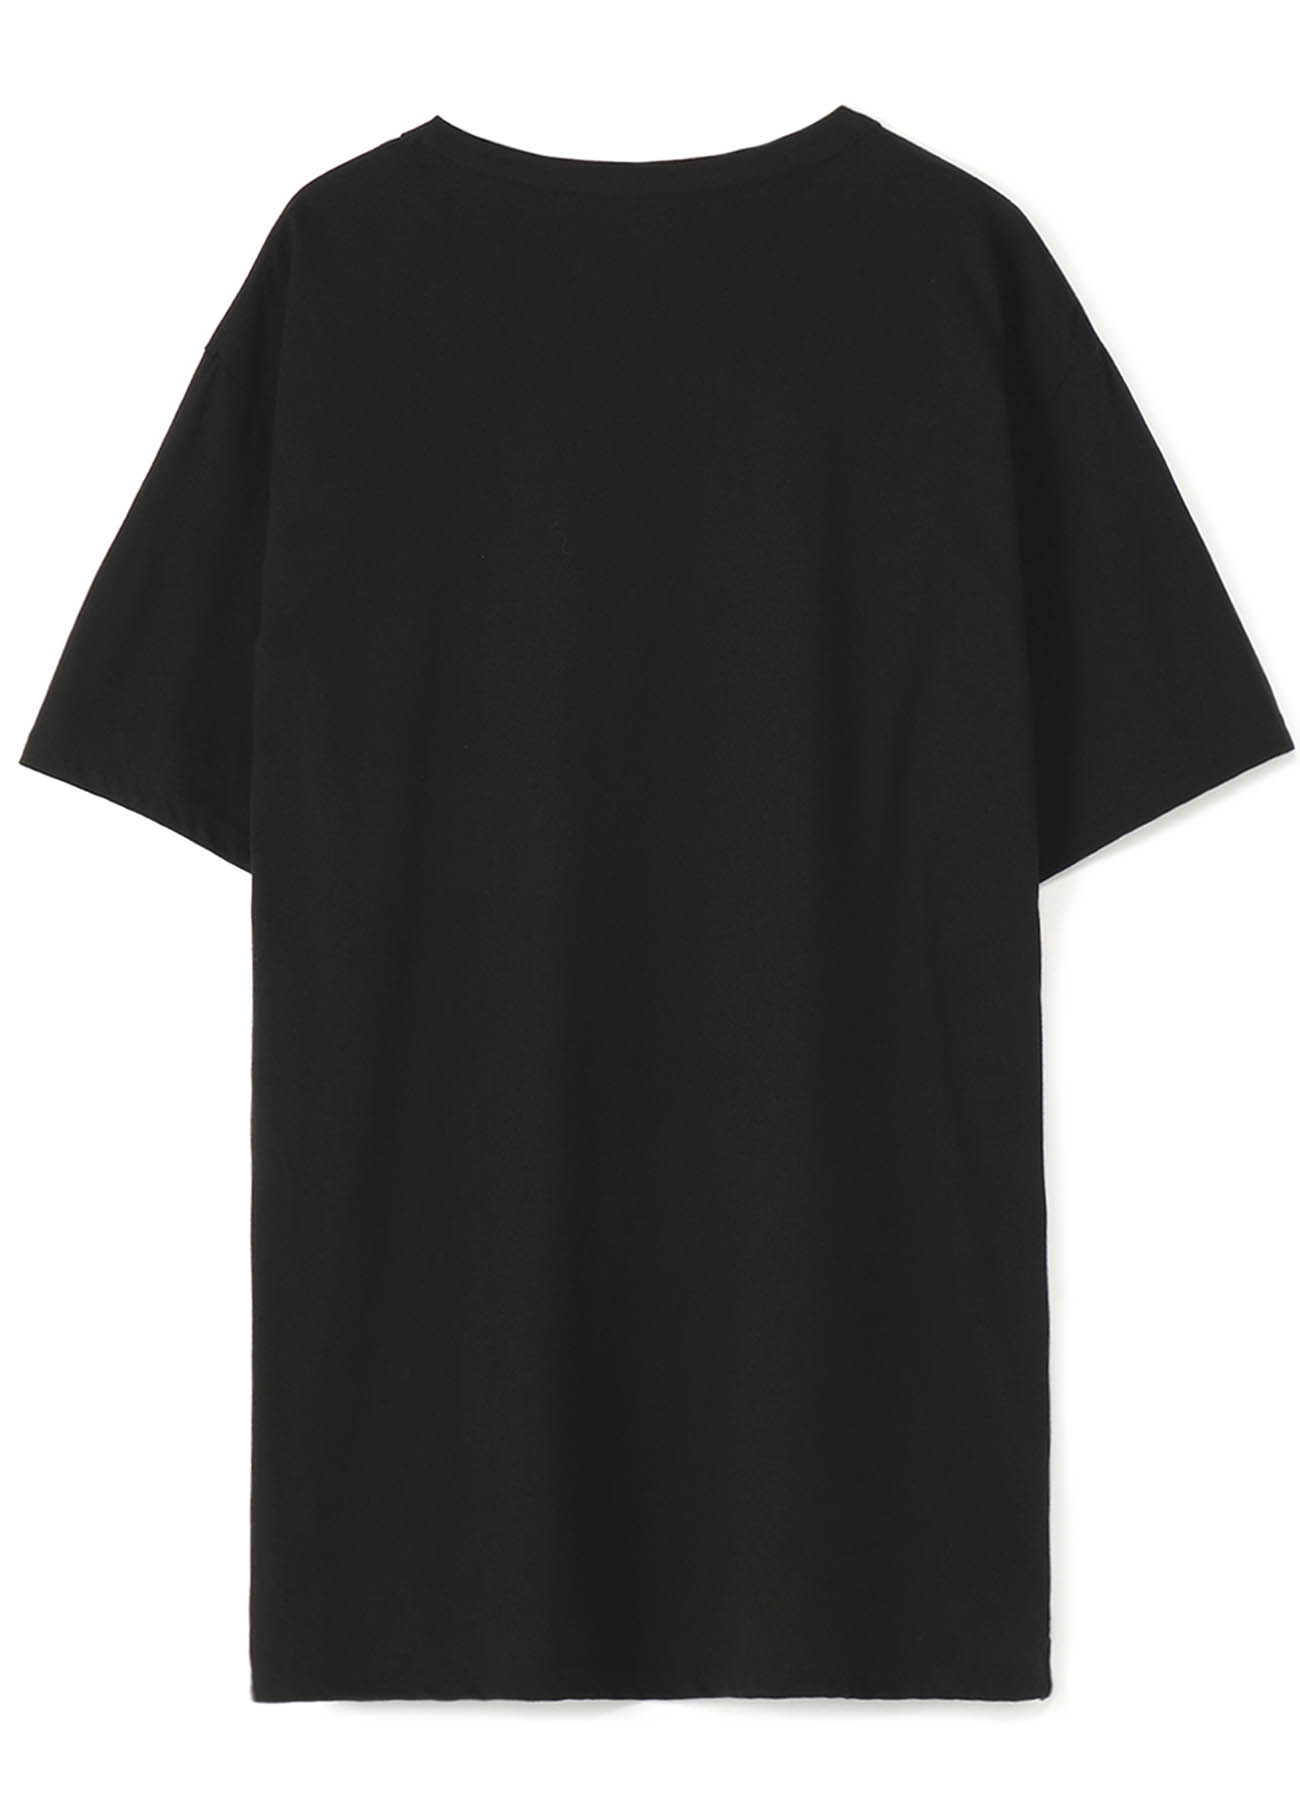 【Ground Y×NON Collaboration】Cotton Jersey Cut Sew Graphic A